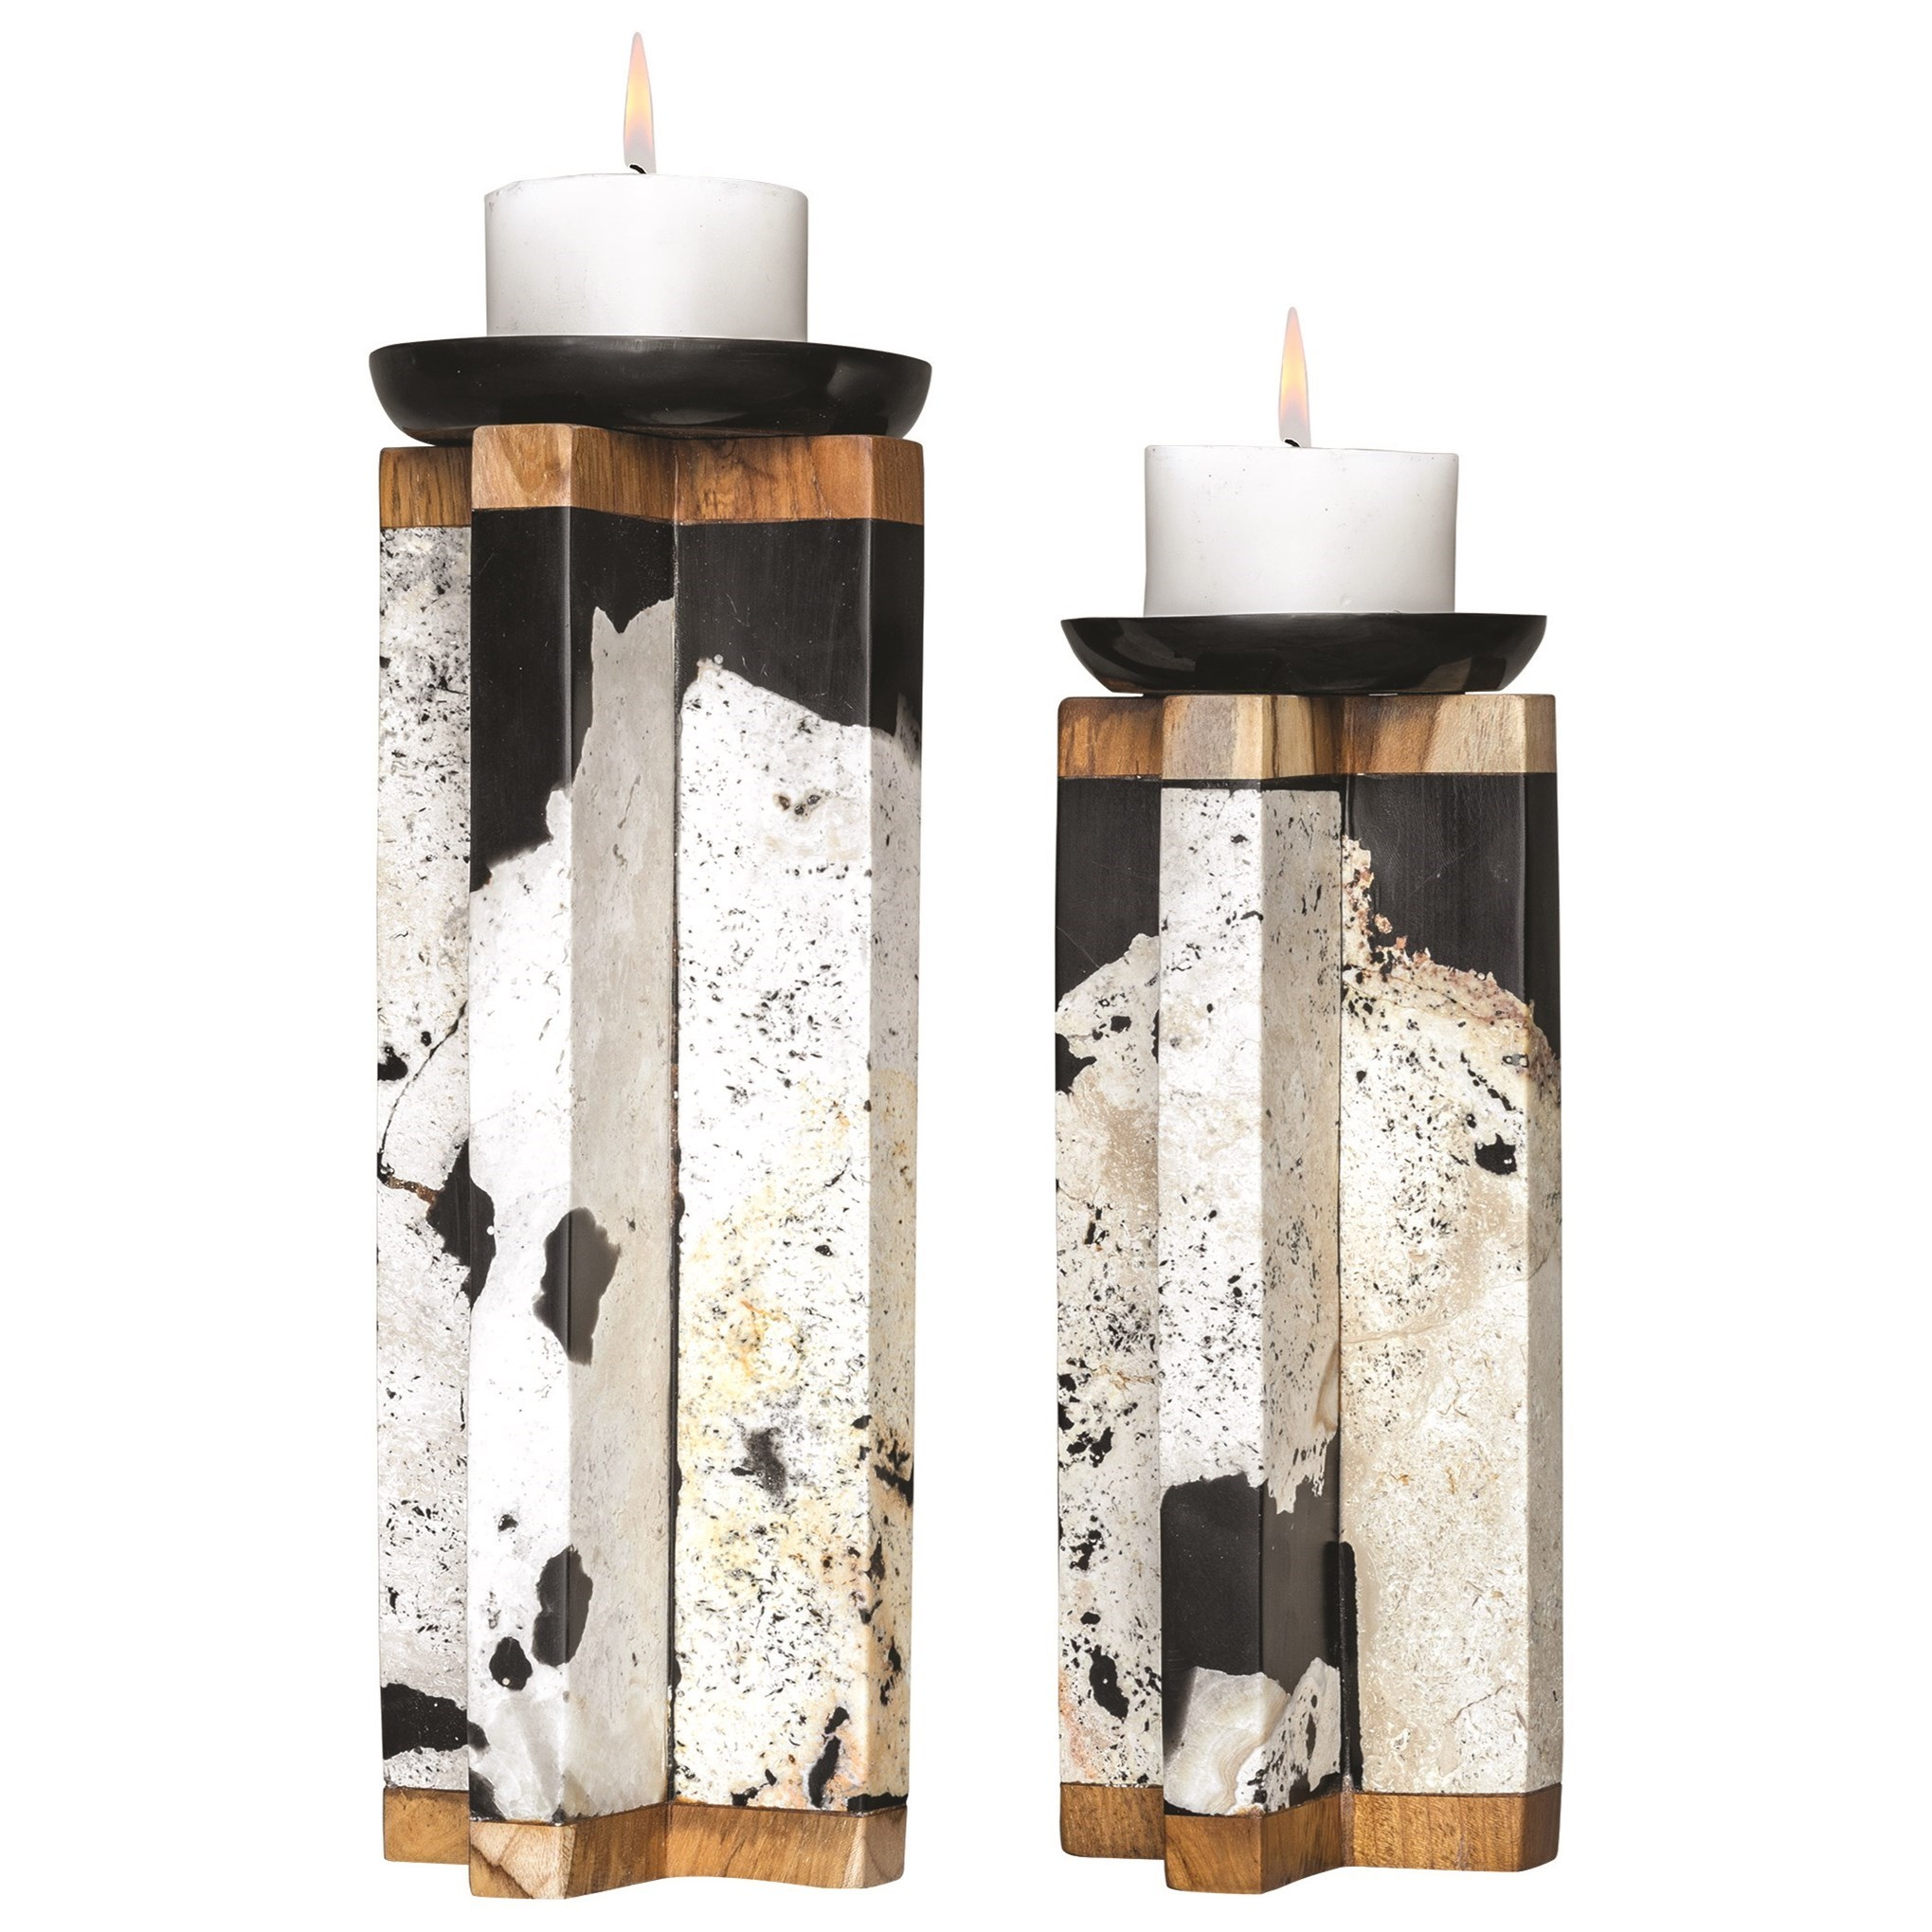 Accessories - Candle Holders Illini Stone Candleholders, S/2 by Uttermost at Dunk & Bright Furniture